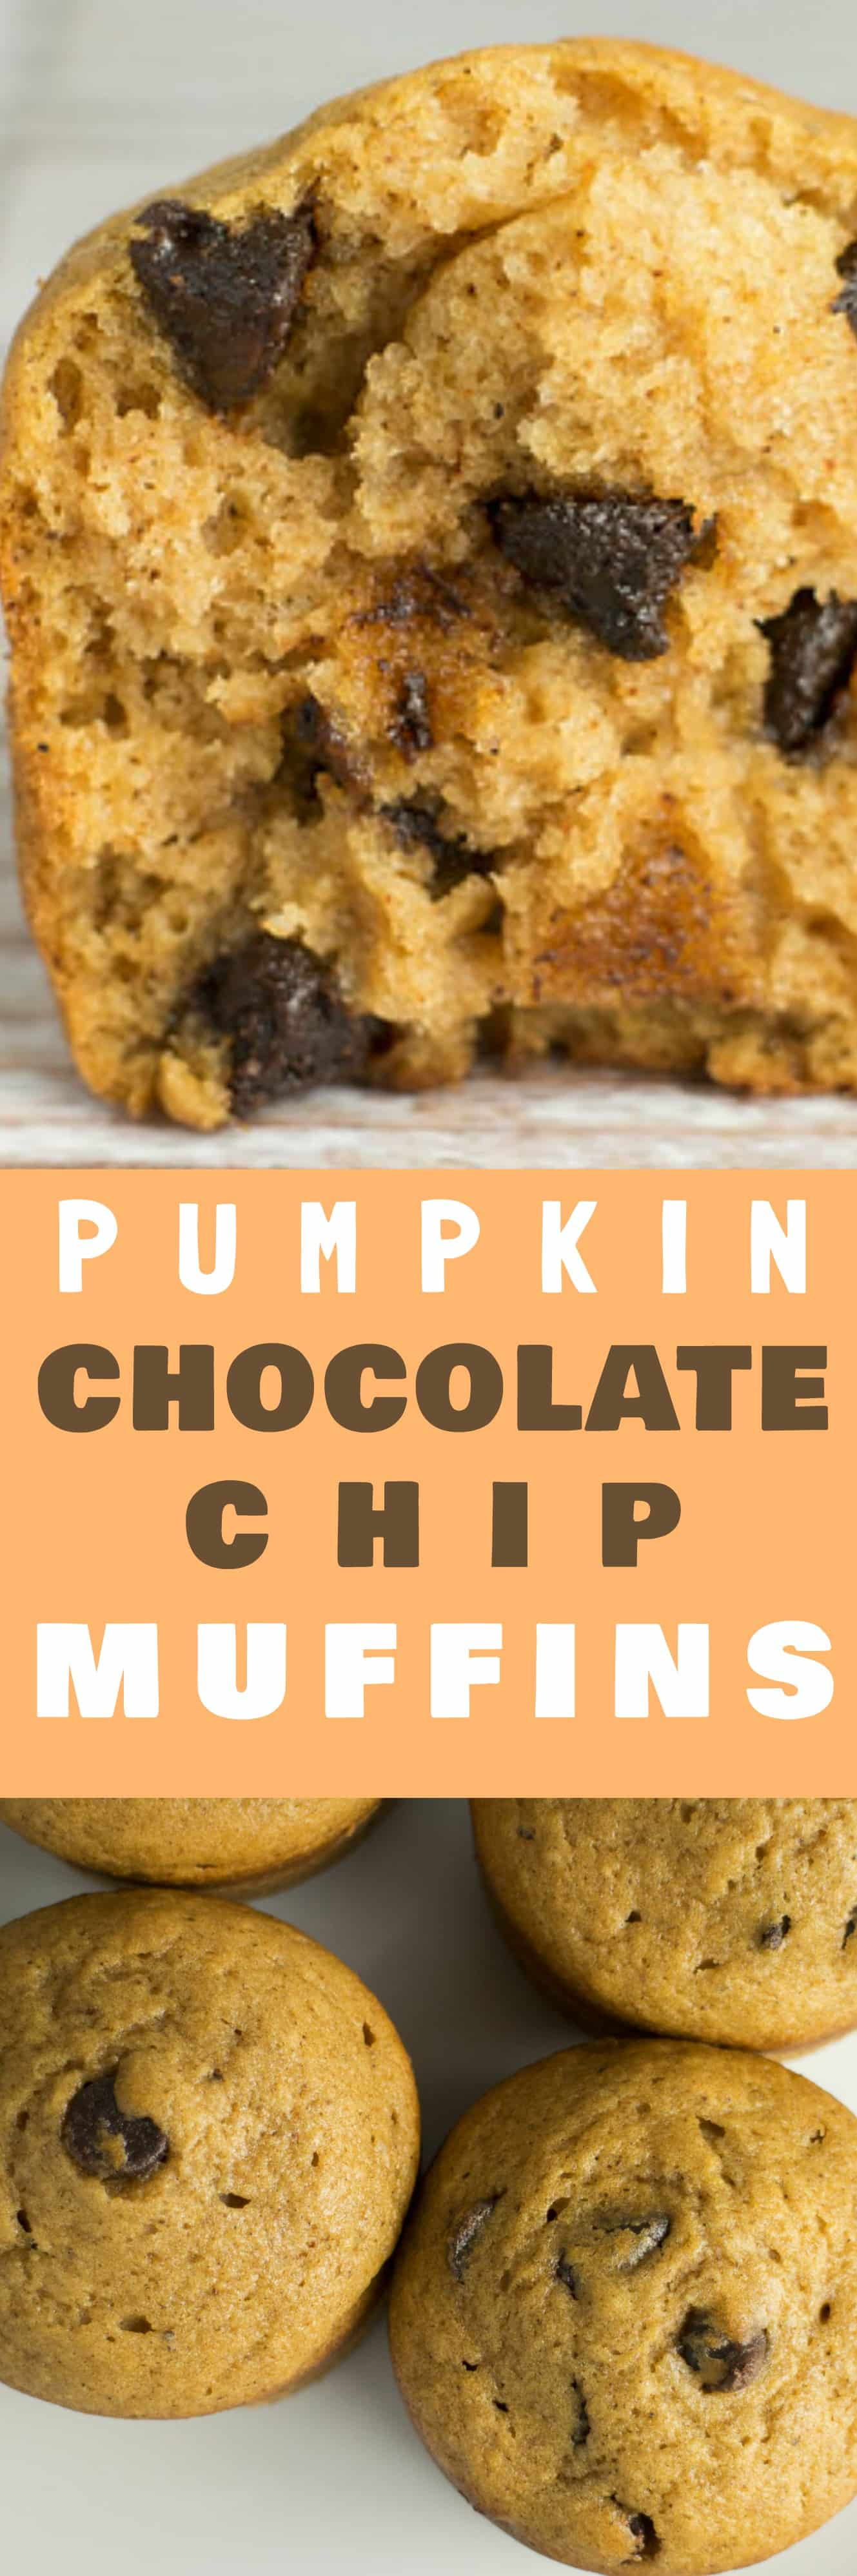 Moist and DELICIOUS Pumpkin Spiced Chocolate Chip Muffins! You won't believe how good these are considering how easy they are to make! My family considers these the best pumpkin dessert! These are easy to turn into a gluten free recipe too!